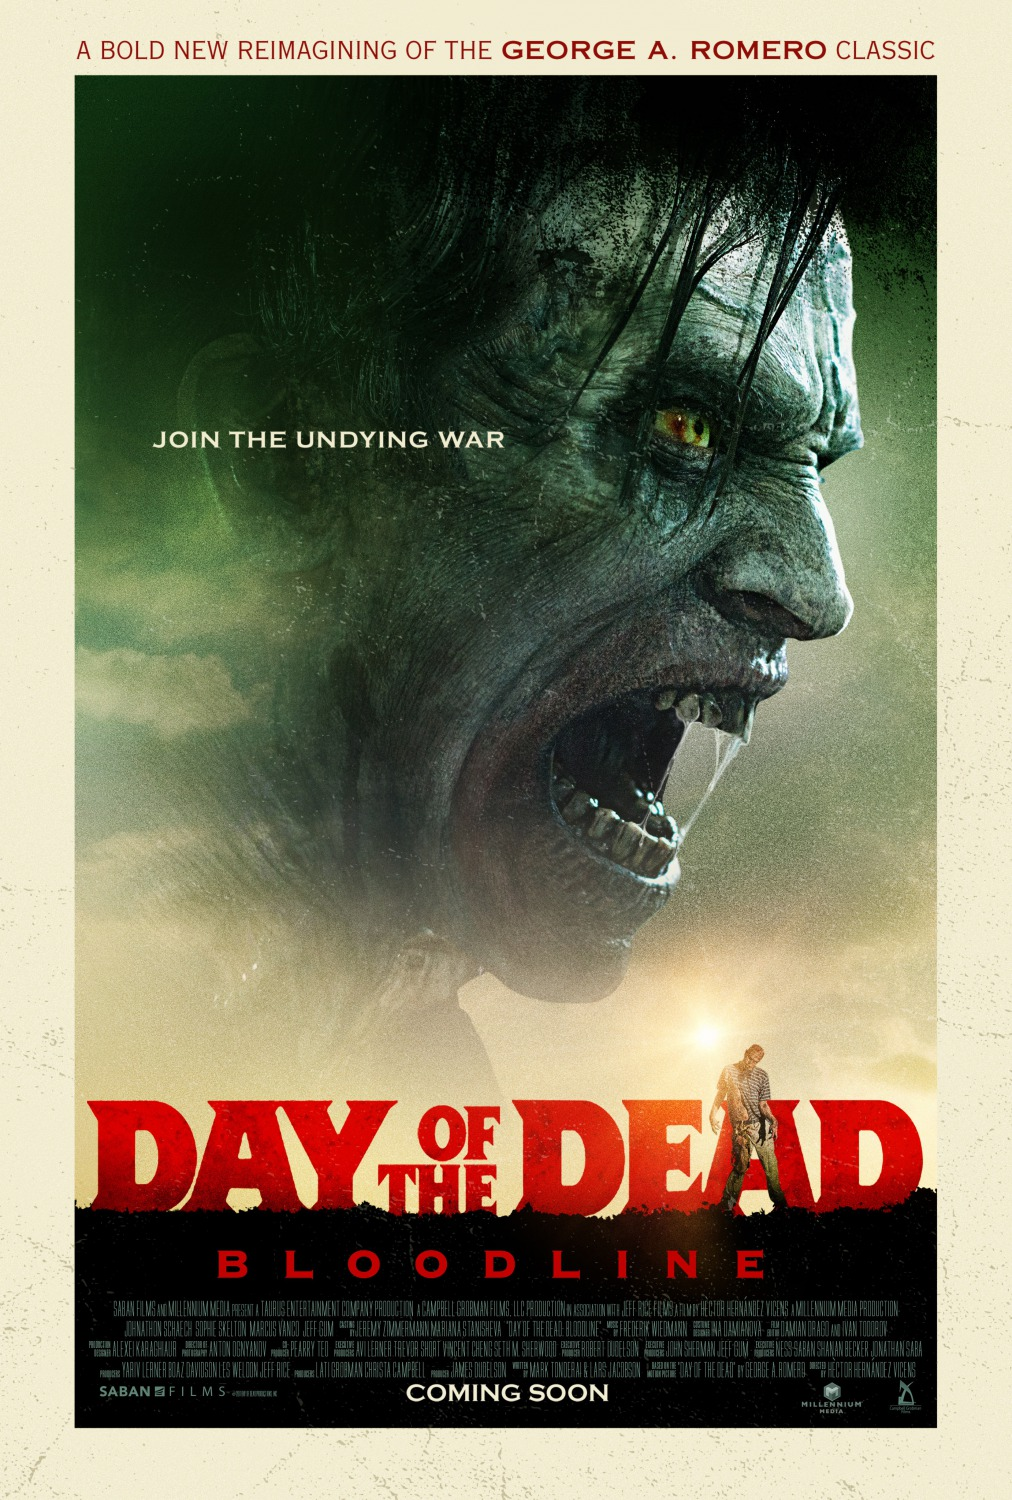 Day-of-the-Dead-Bloodline-movie-poster.jpg?ssl=1